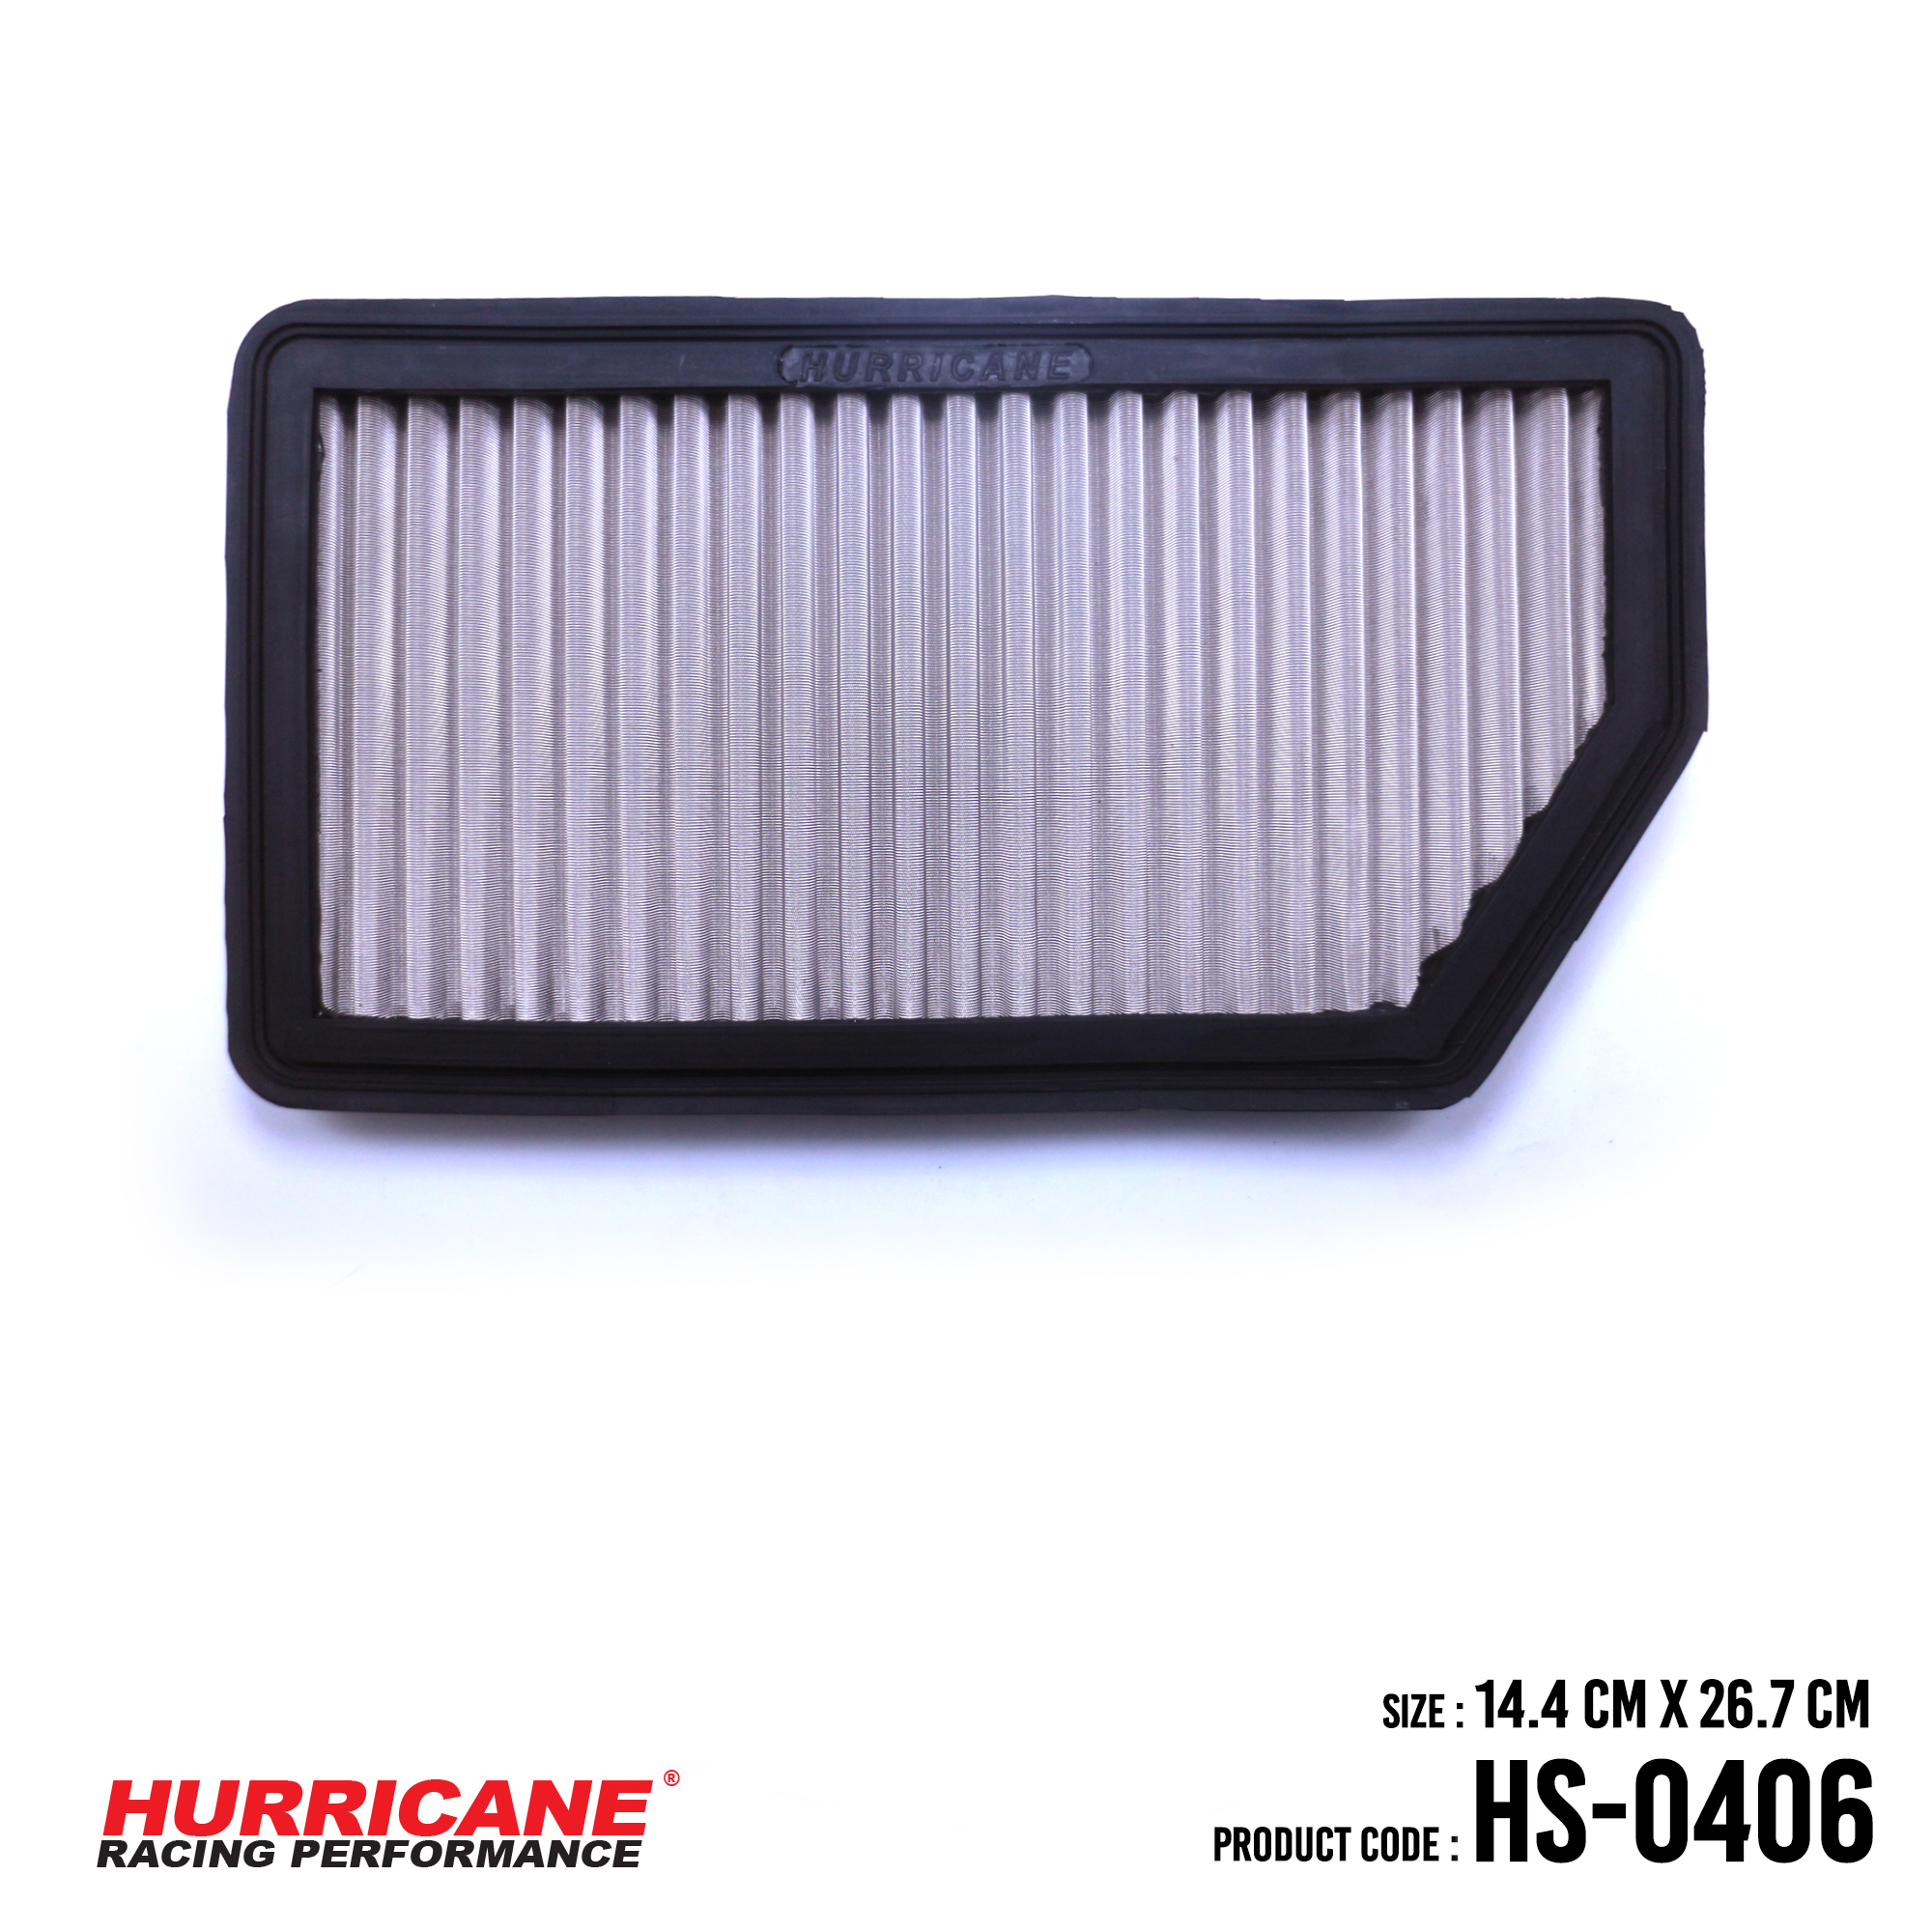 HURRICANE STAINLESS STEEL AIR FILTER FOR HS-0406 Kia